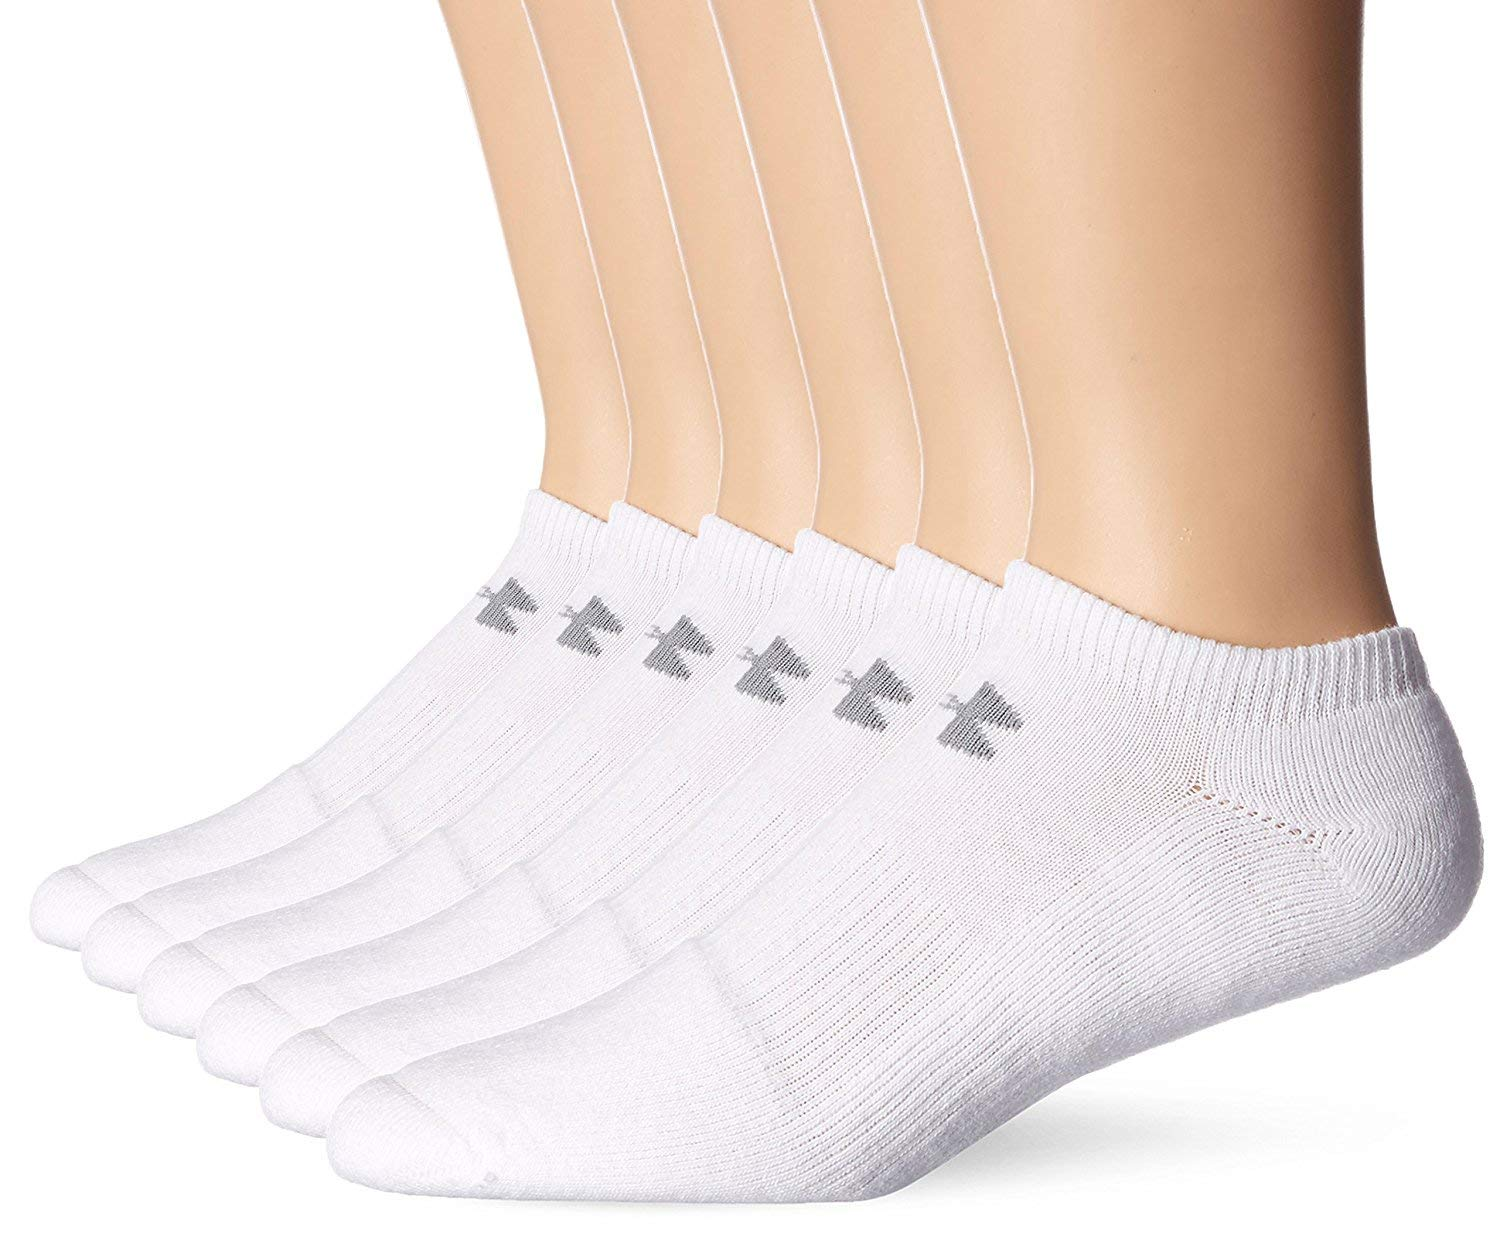 Under Armour Mens Charged Cotton 2.0 No Show Socks - (2-pk (12 Pair) Medium, White)